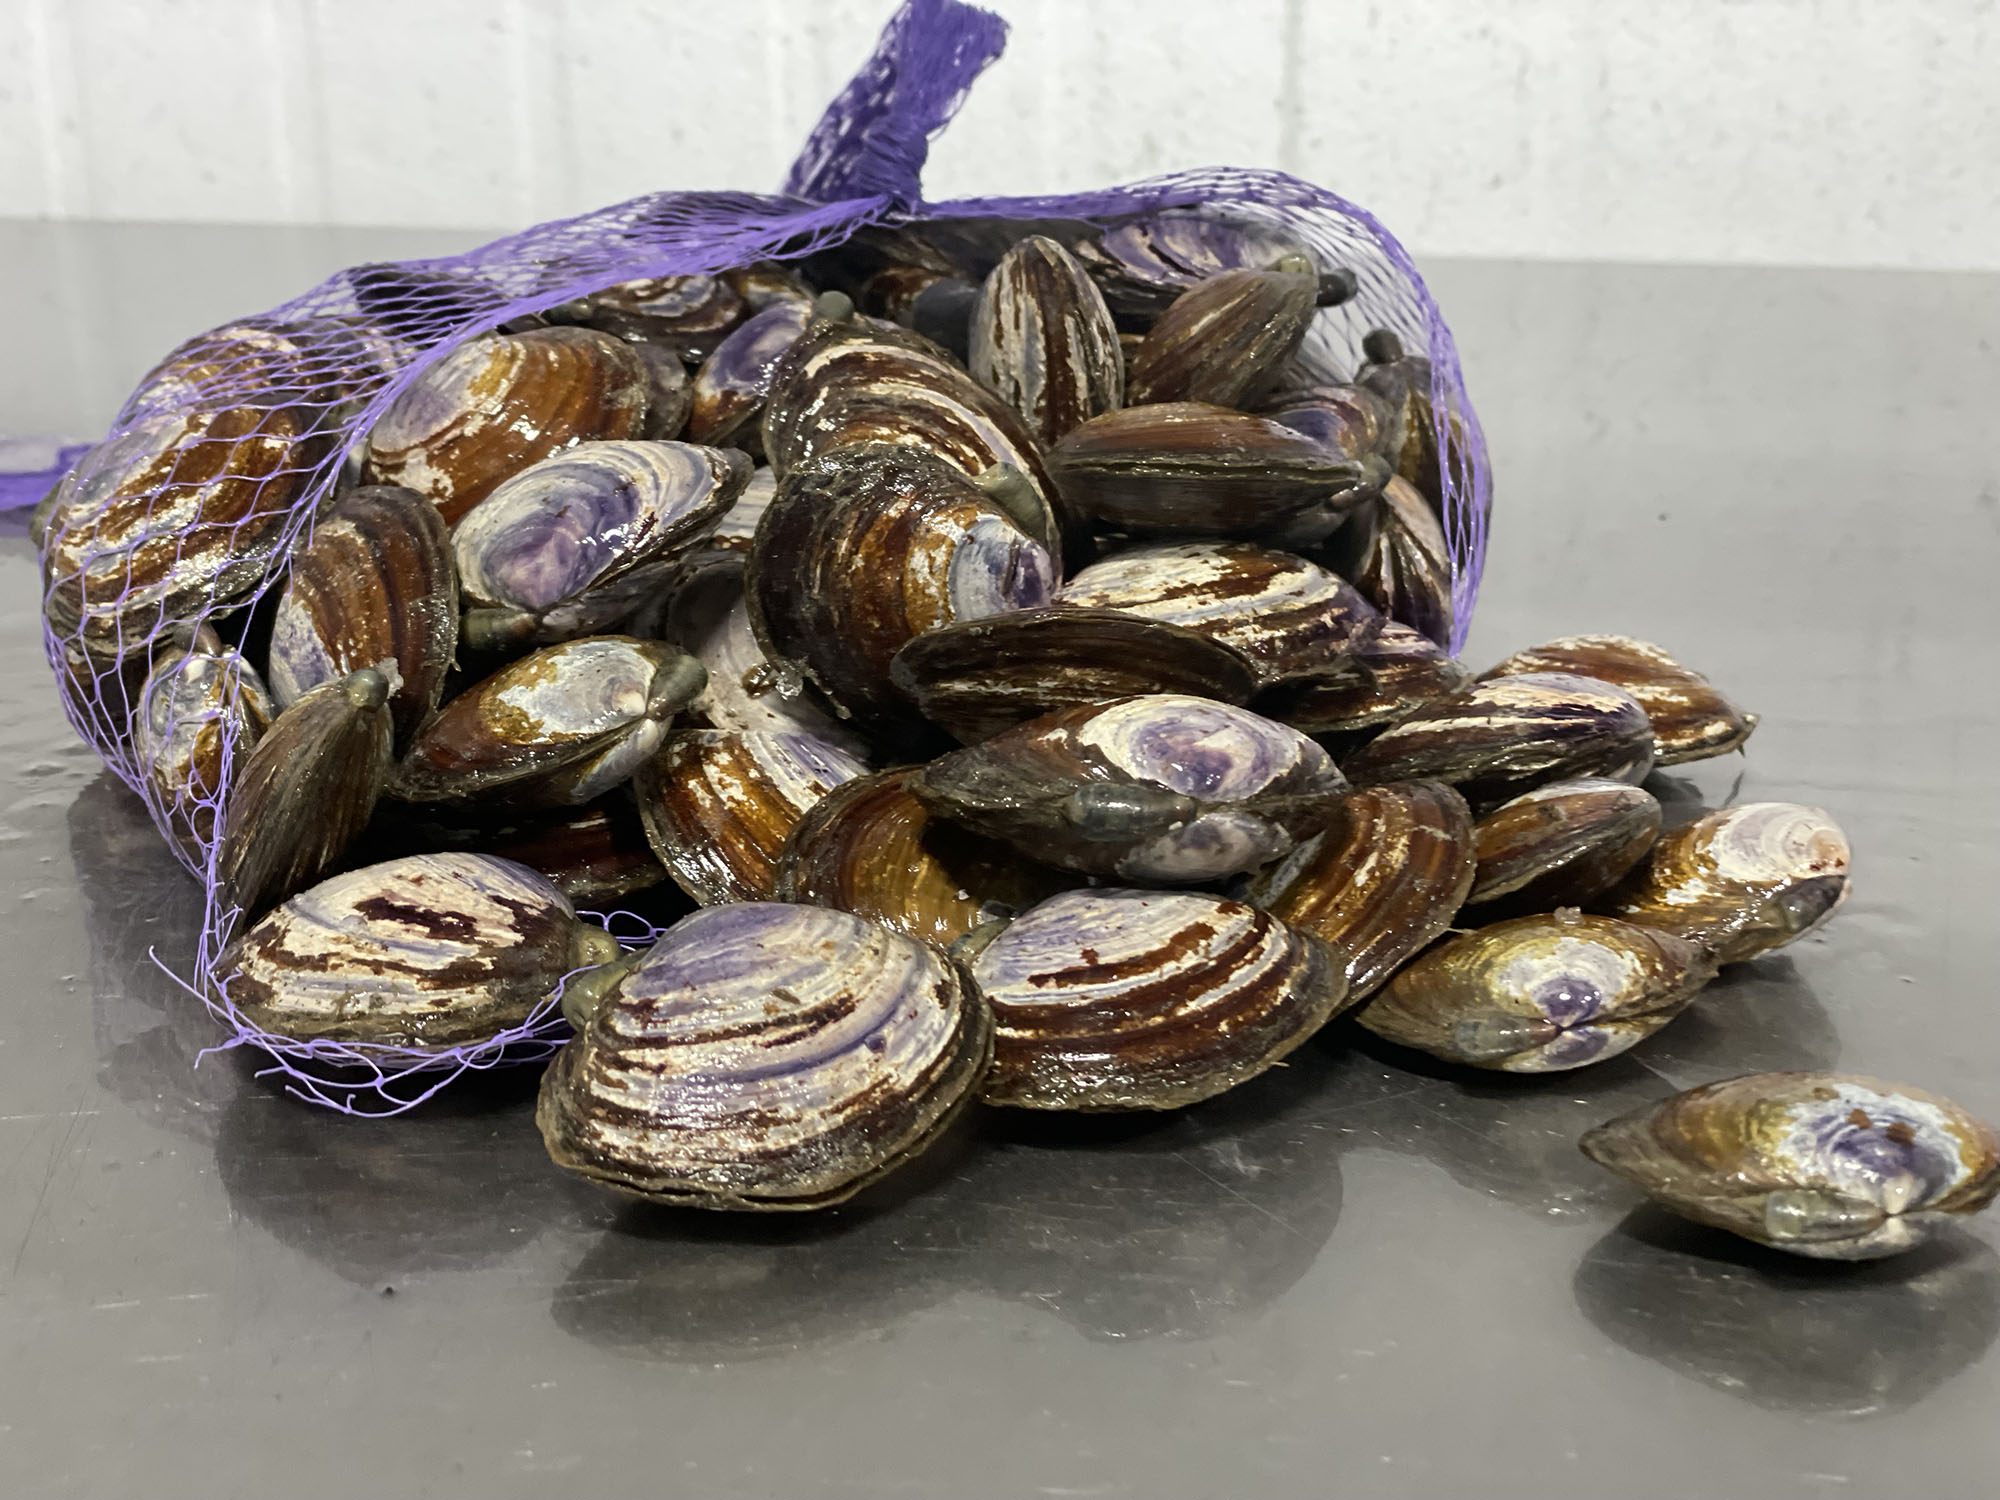 Purple Clams are actually more like mussels than Manila Clams. They range from small to medium in size and are a delicious choice for clam lovers.